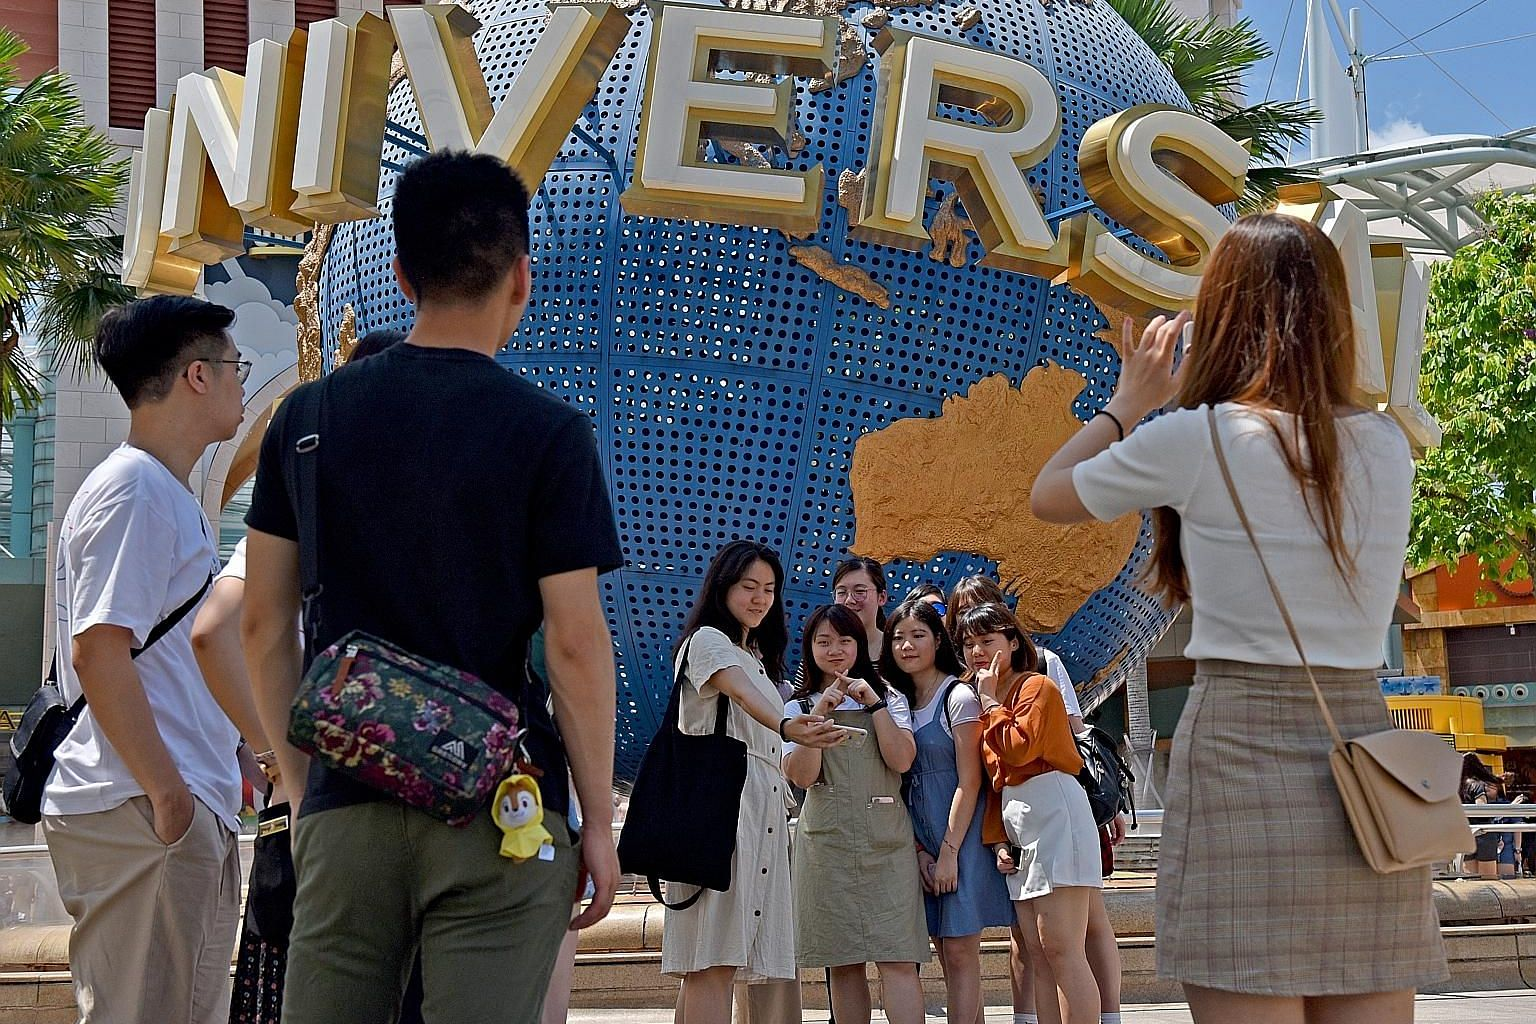 Resorts World Singapore's next stage of development was unveiled last Wednesday when it announced expansion plans that will add around 164,000 sq m of new attractions and lifestyle offerings.